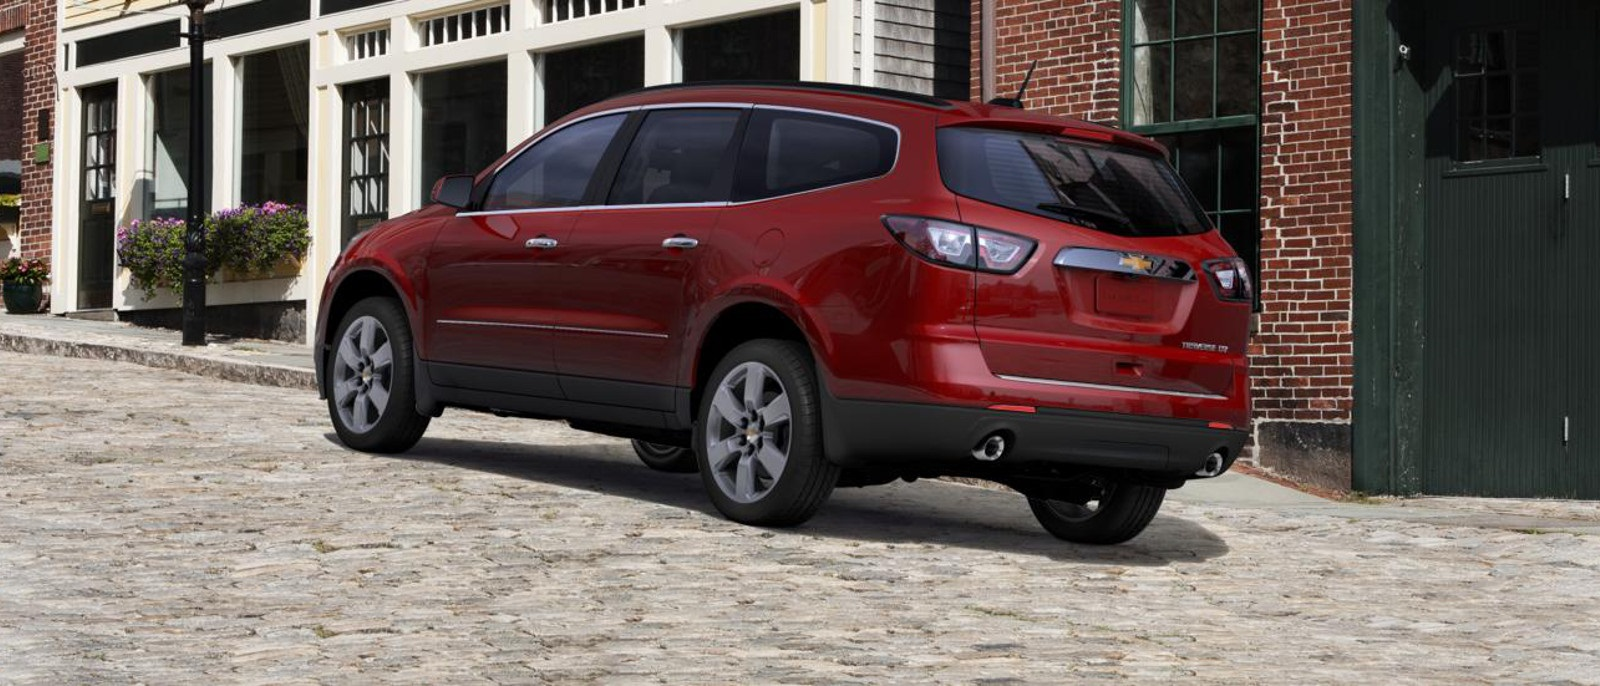 2016 Chevrolet Traverse back view